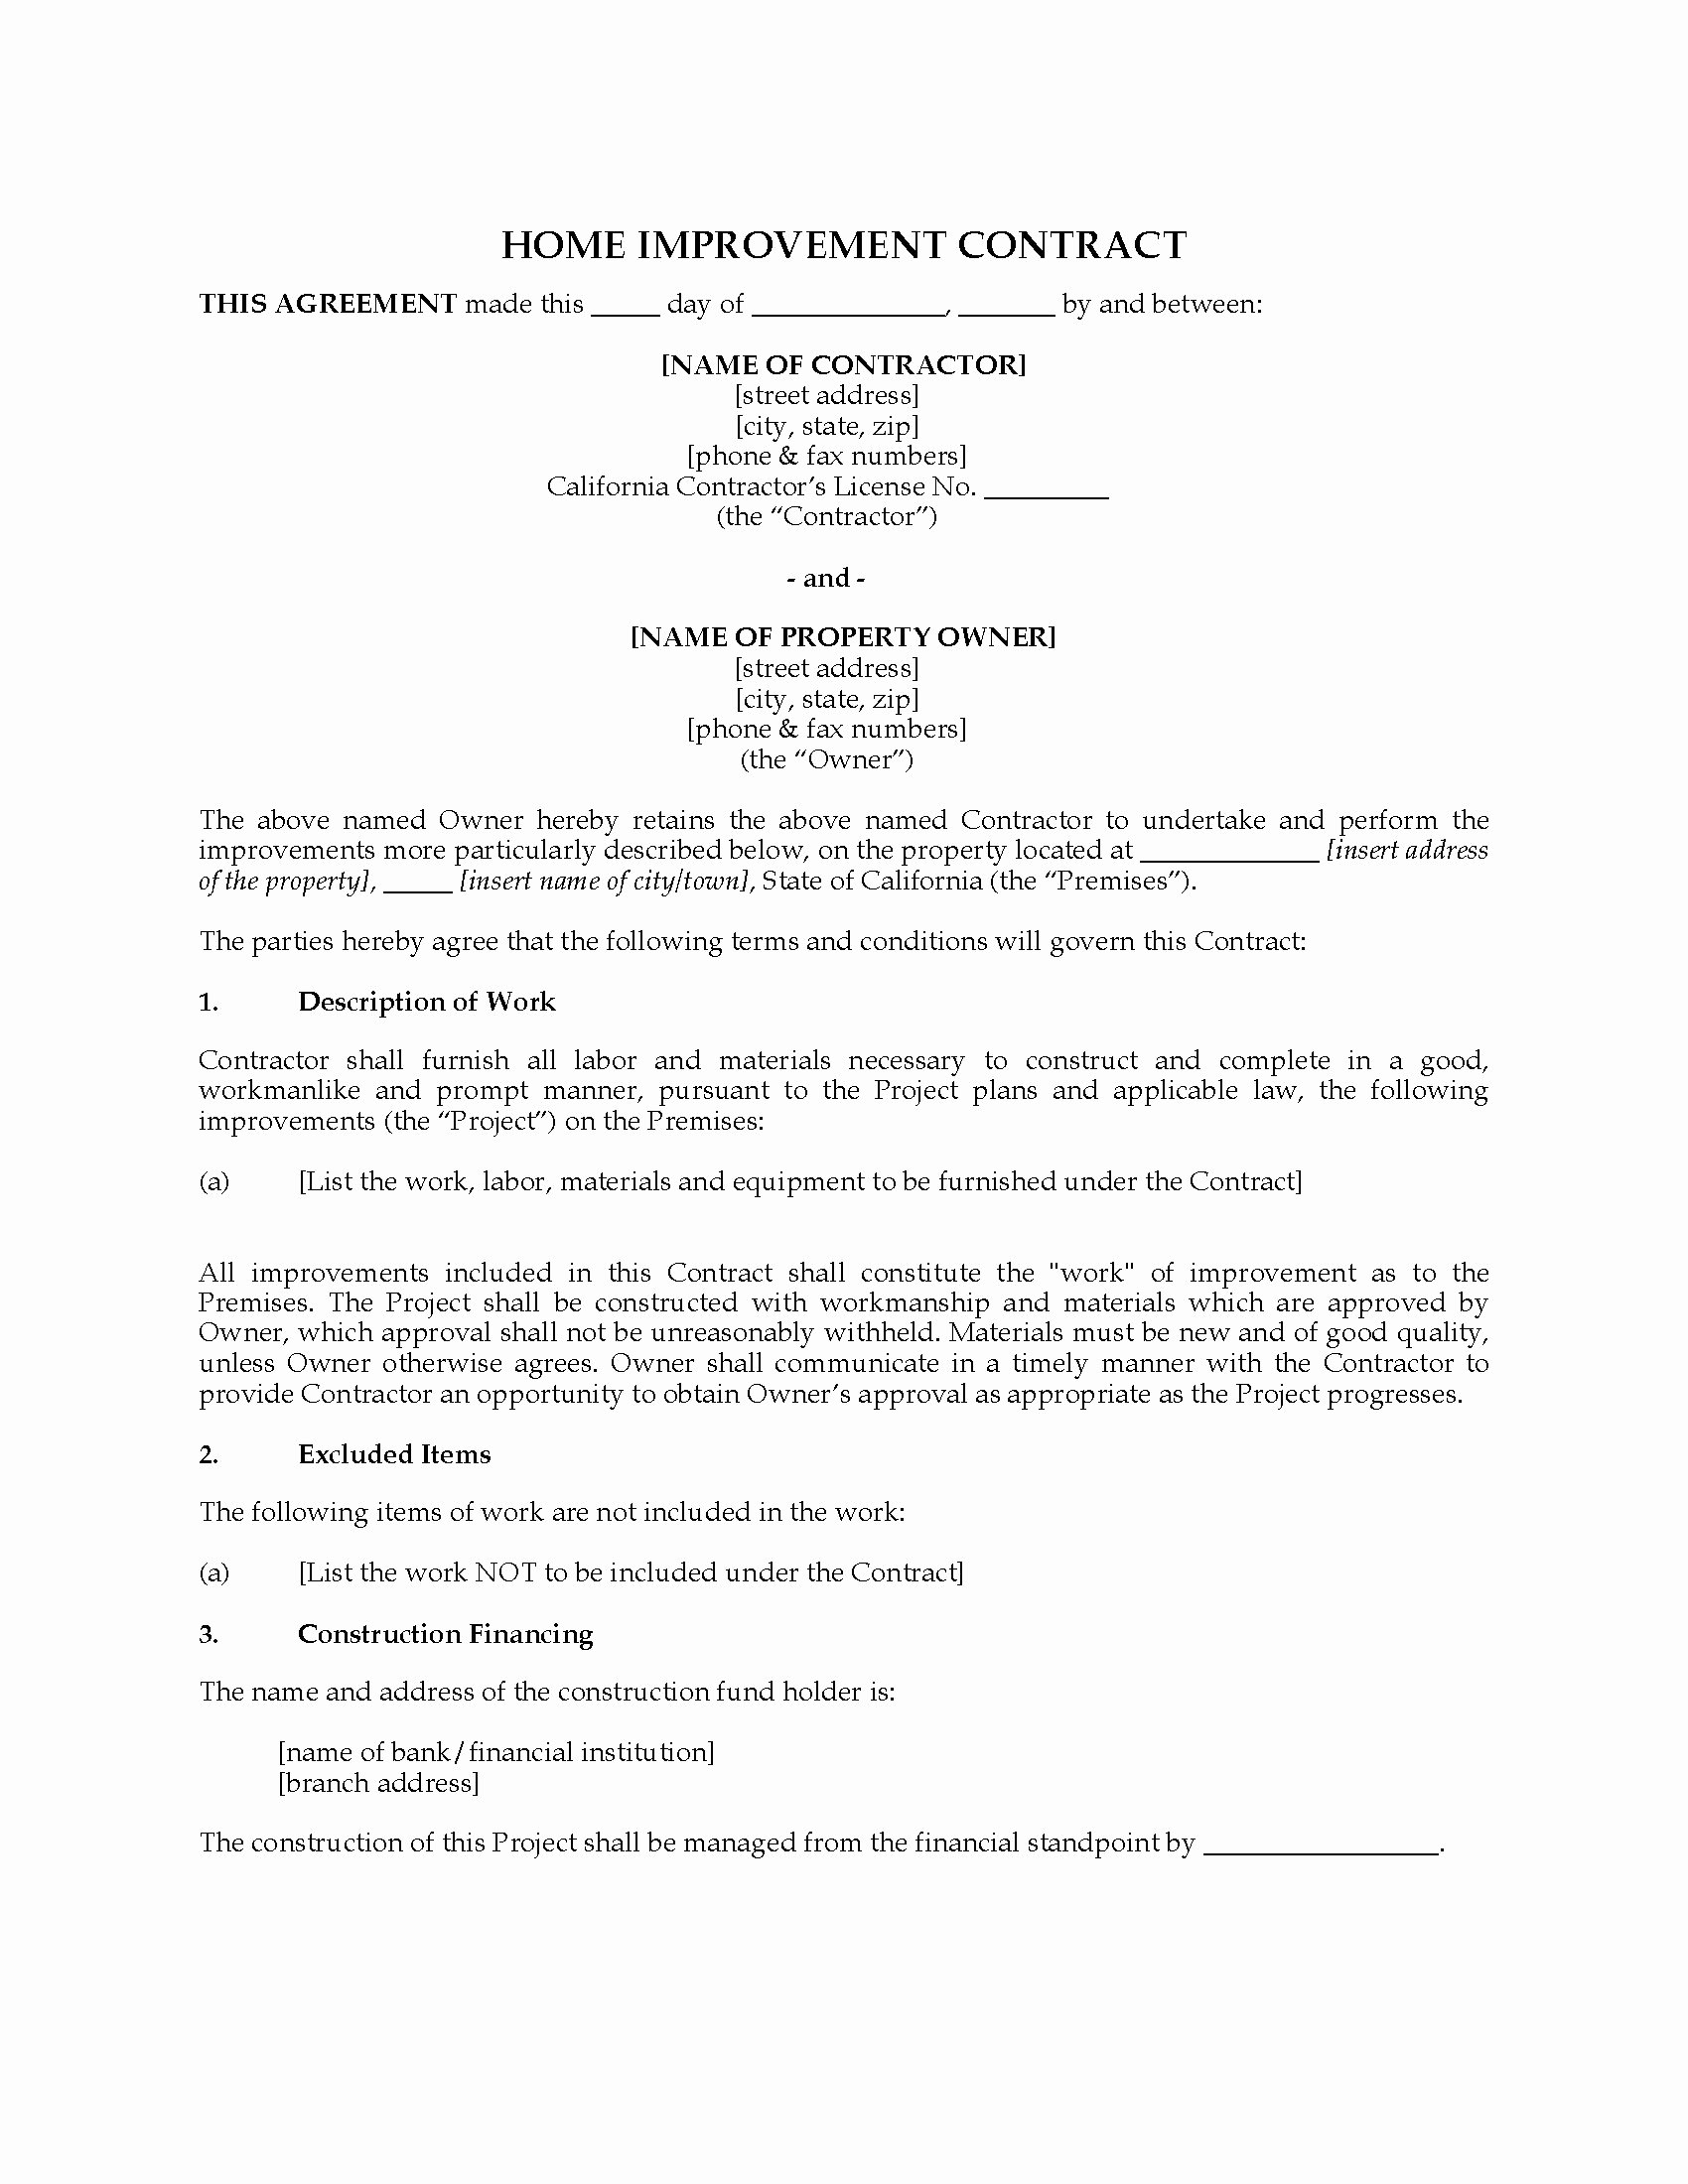 Home Improvement Contract Template New California Home Improvement Contract